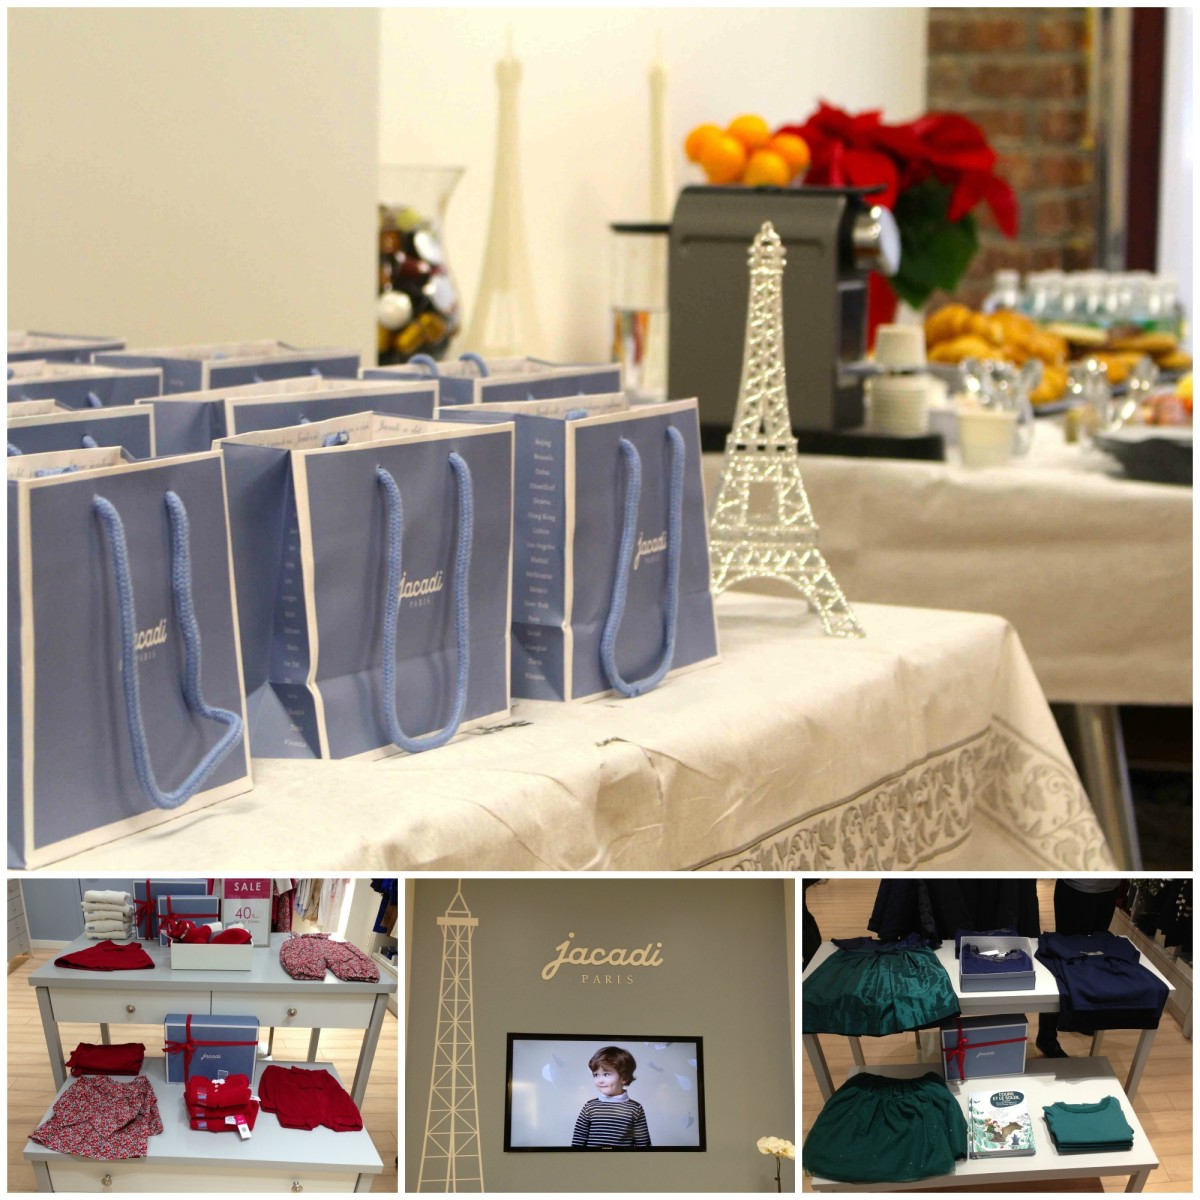 ... information on Jacadi Paris stores and locations visit www.jacadi.us